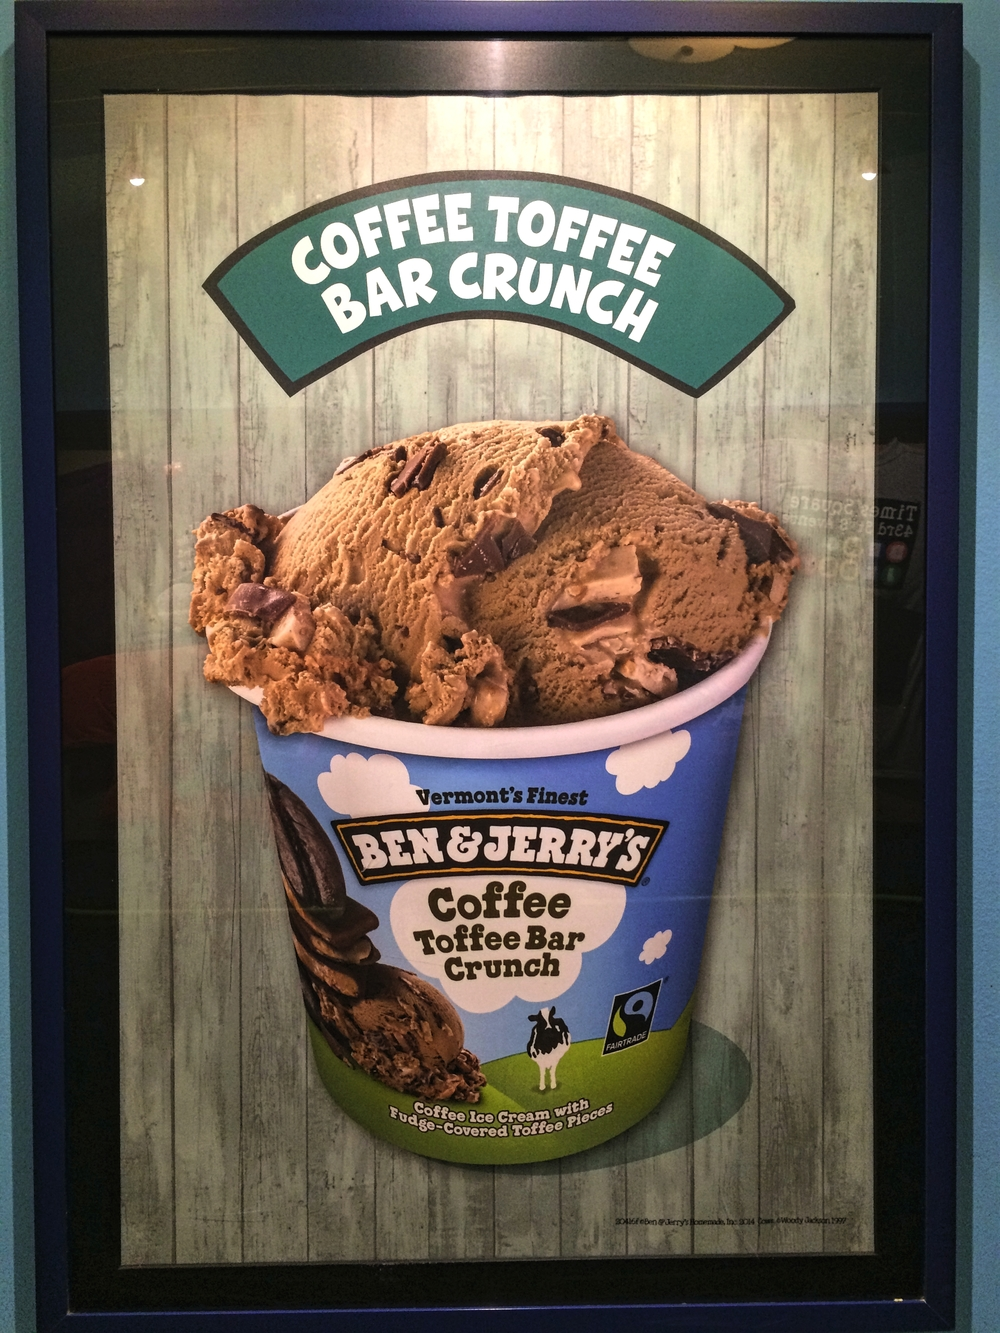 My favorite of the glamor shot ice creams in the Ben & Jerry's factory hallway.